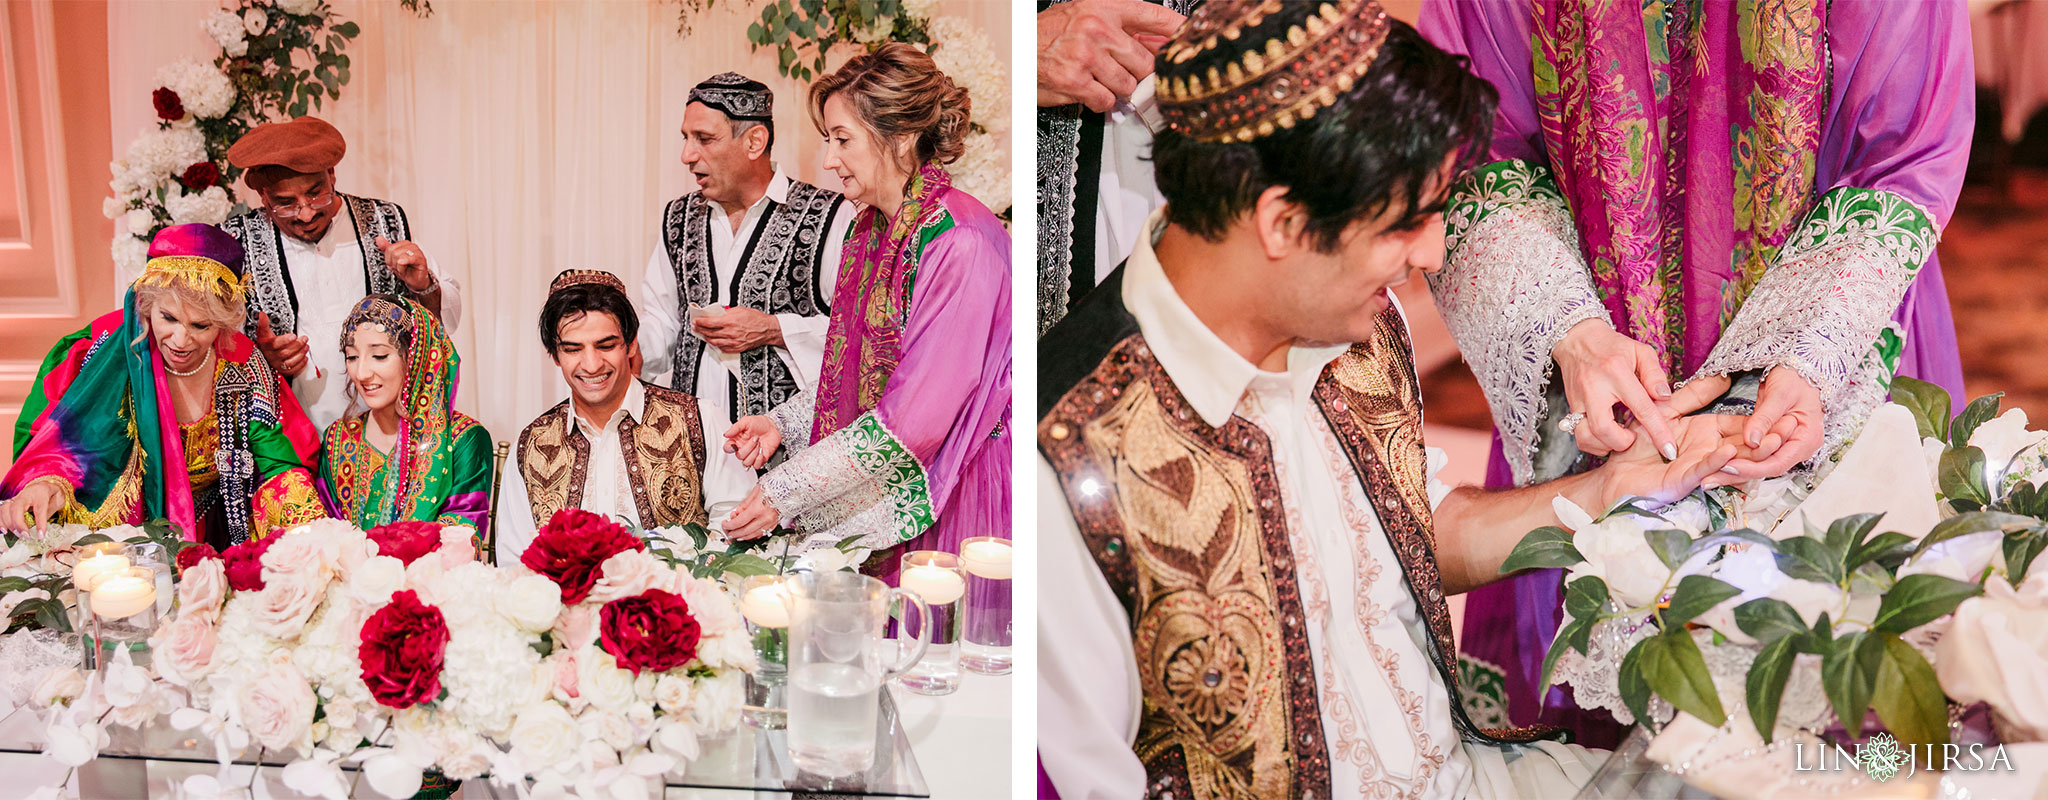 030 taglyan complex los angeles persian wedding photography